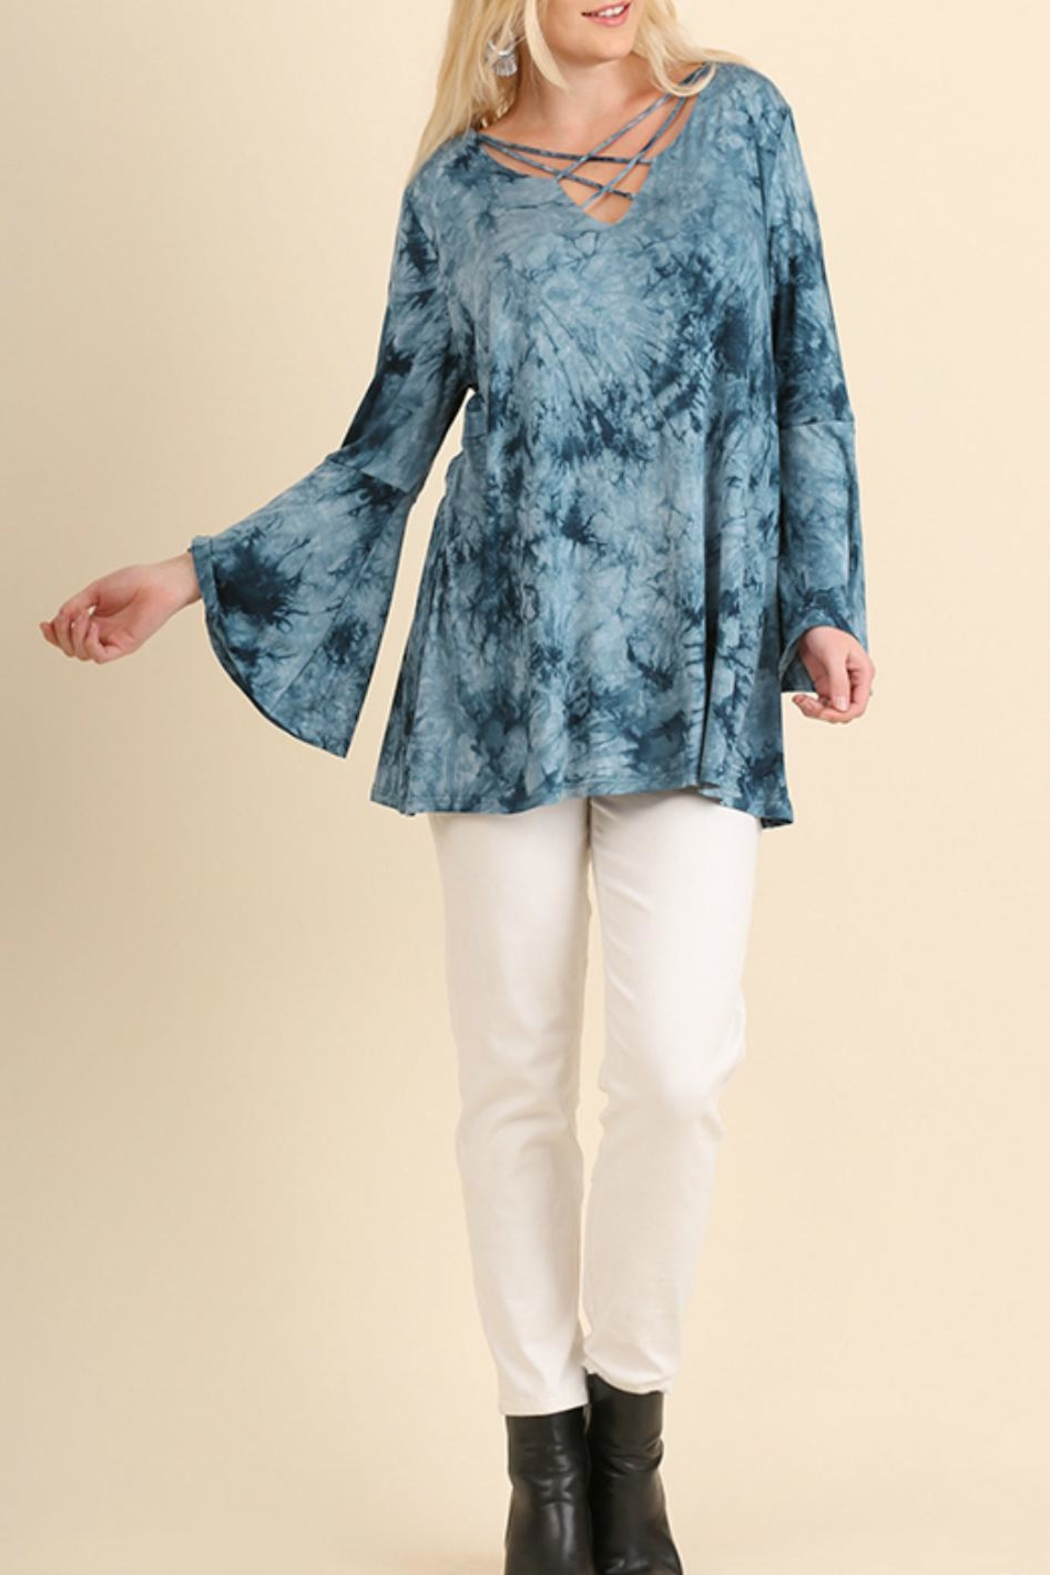 Umgee USA Cage-Front Tie-Dye Tunic - Main Image